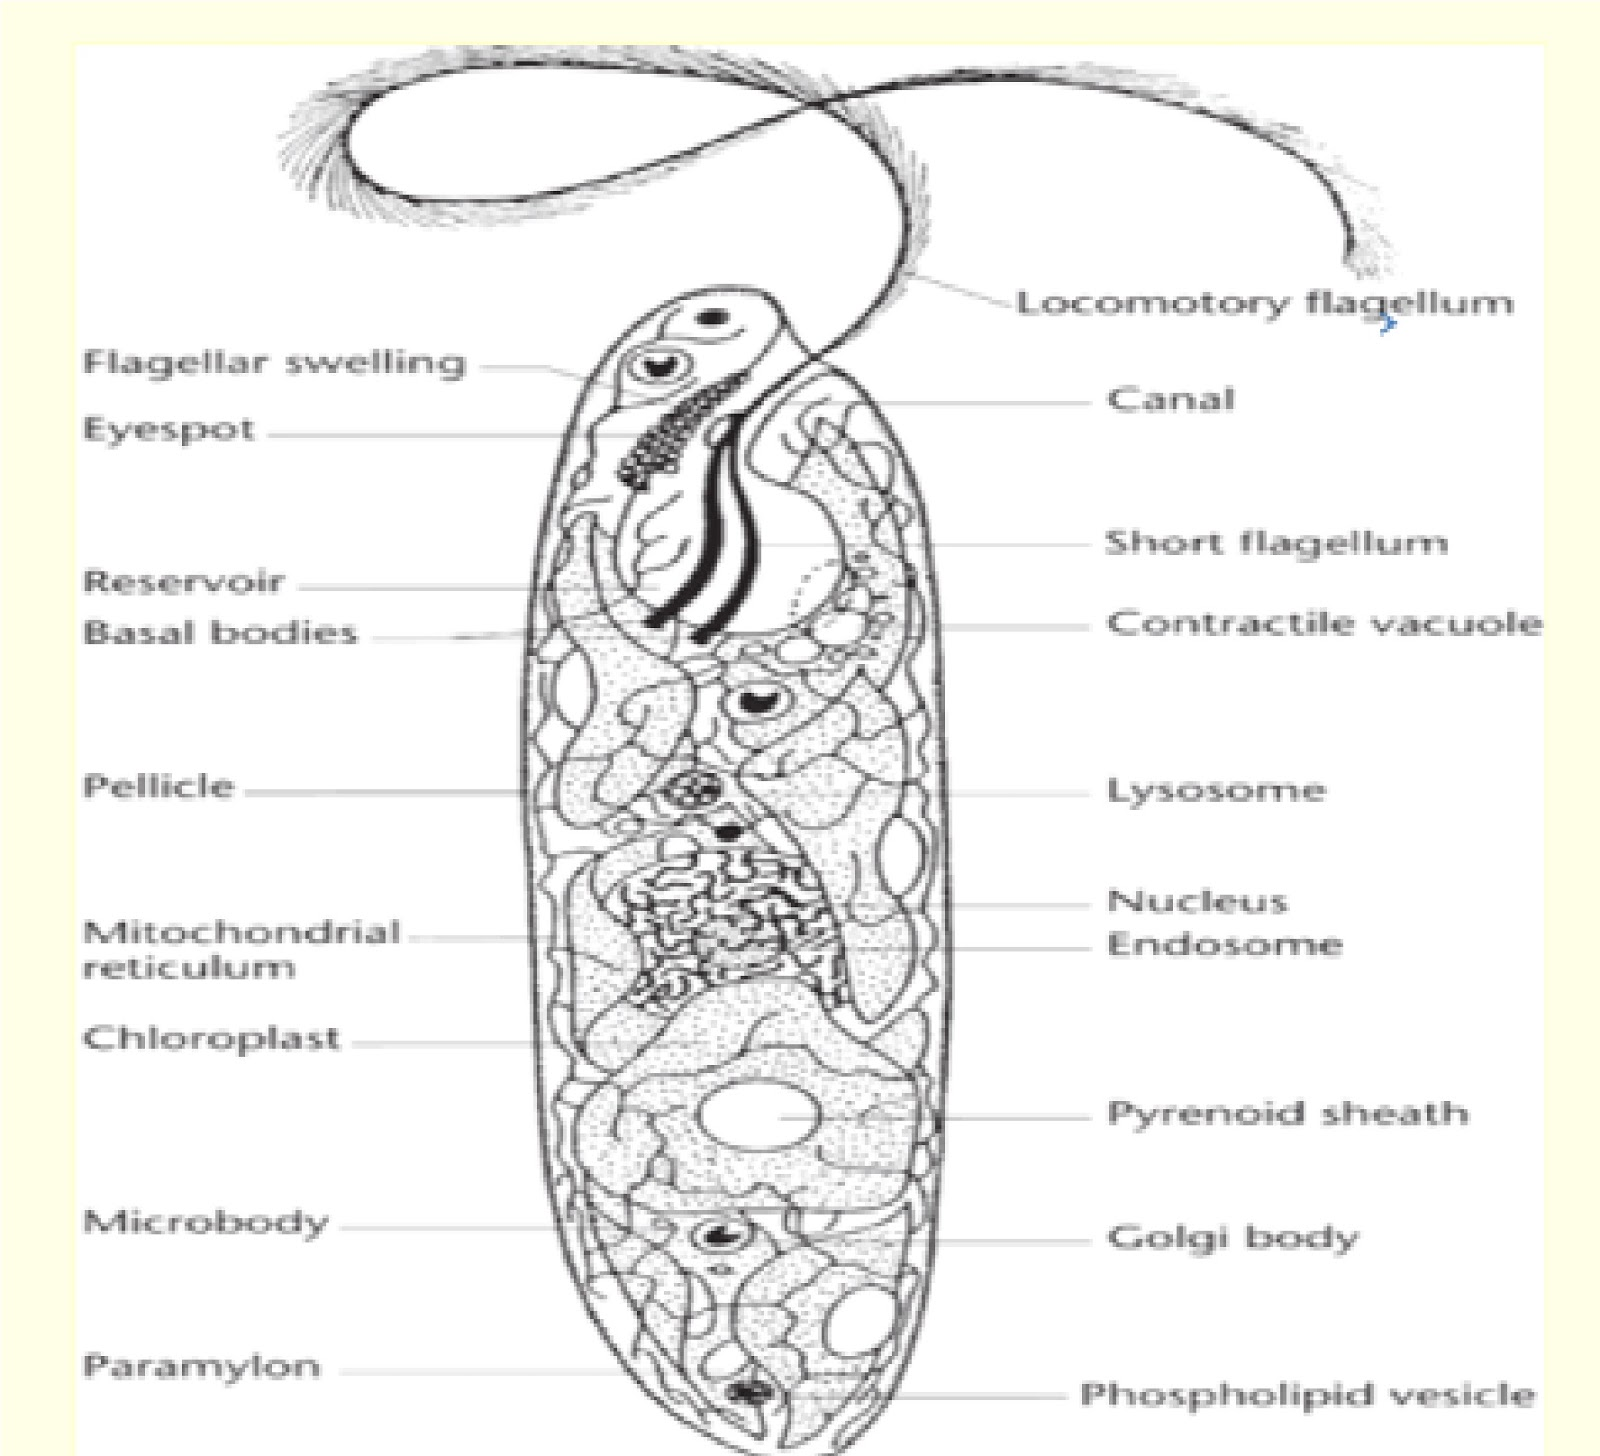 Euglena Diagram Labeled 400 Magnification Wiring For Sony Xplod Car Stereo The Gallery Gt Epidermal Cells